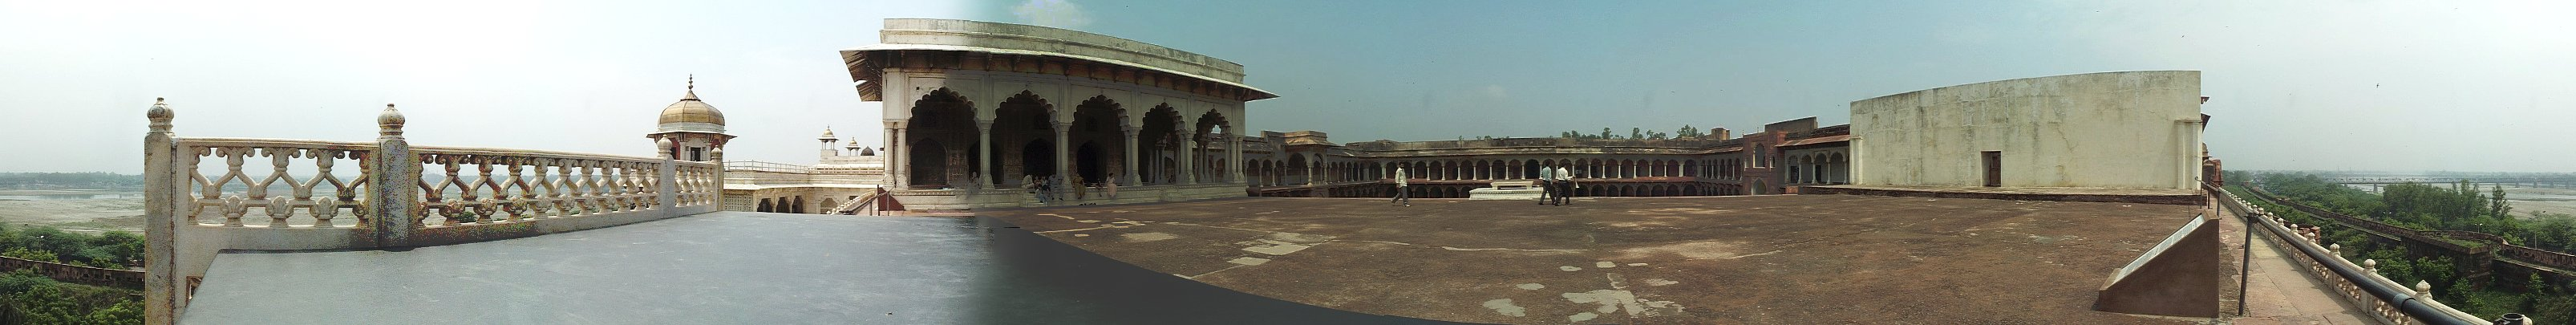 The Red Fort in Agra, across the river from the Taj Mahal